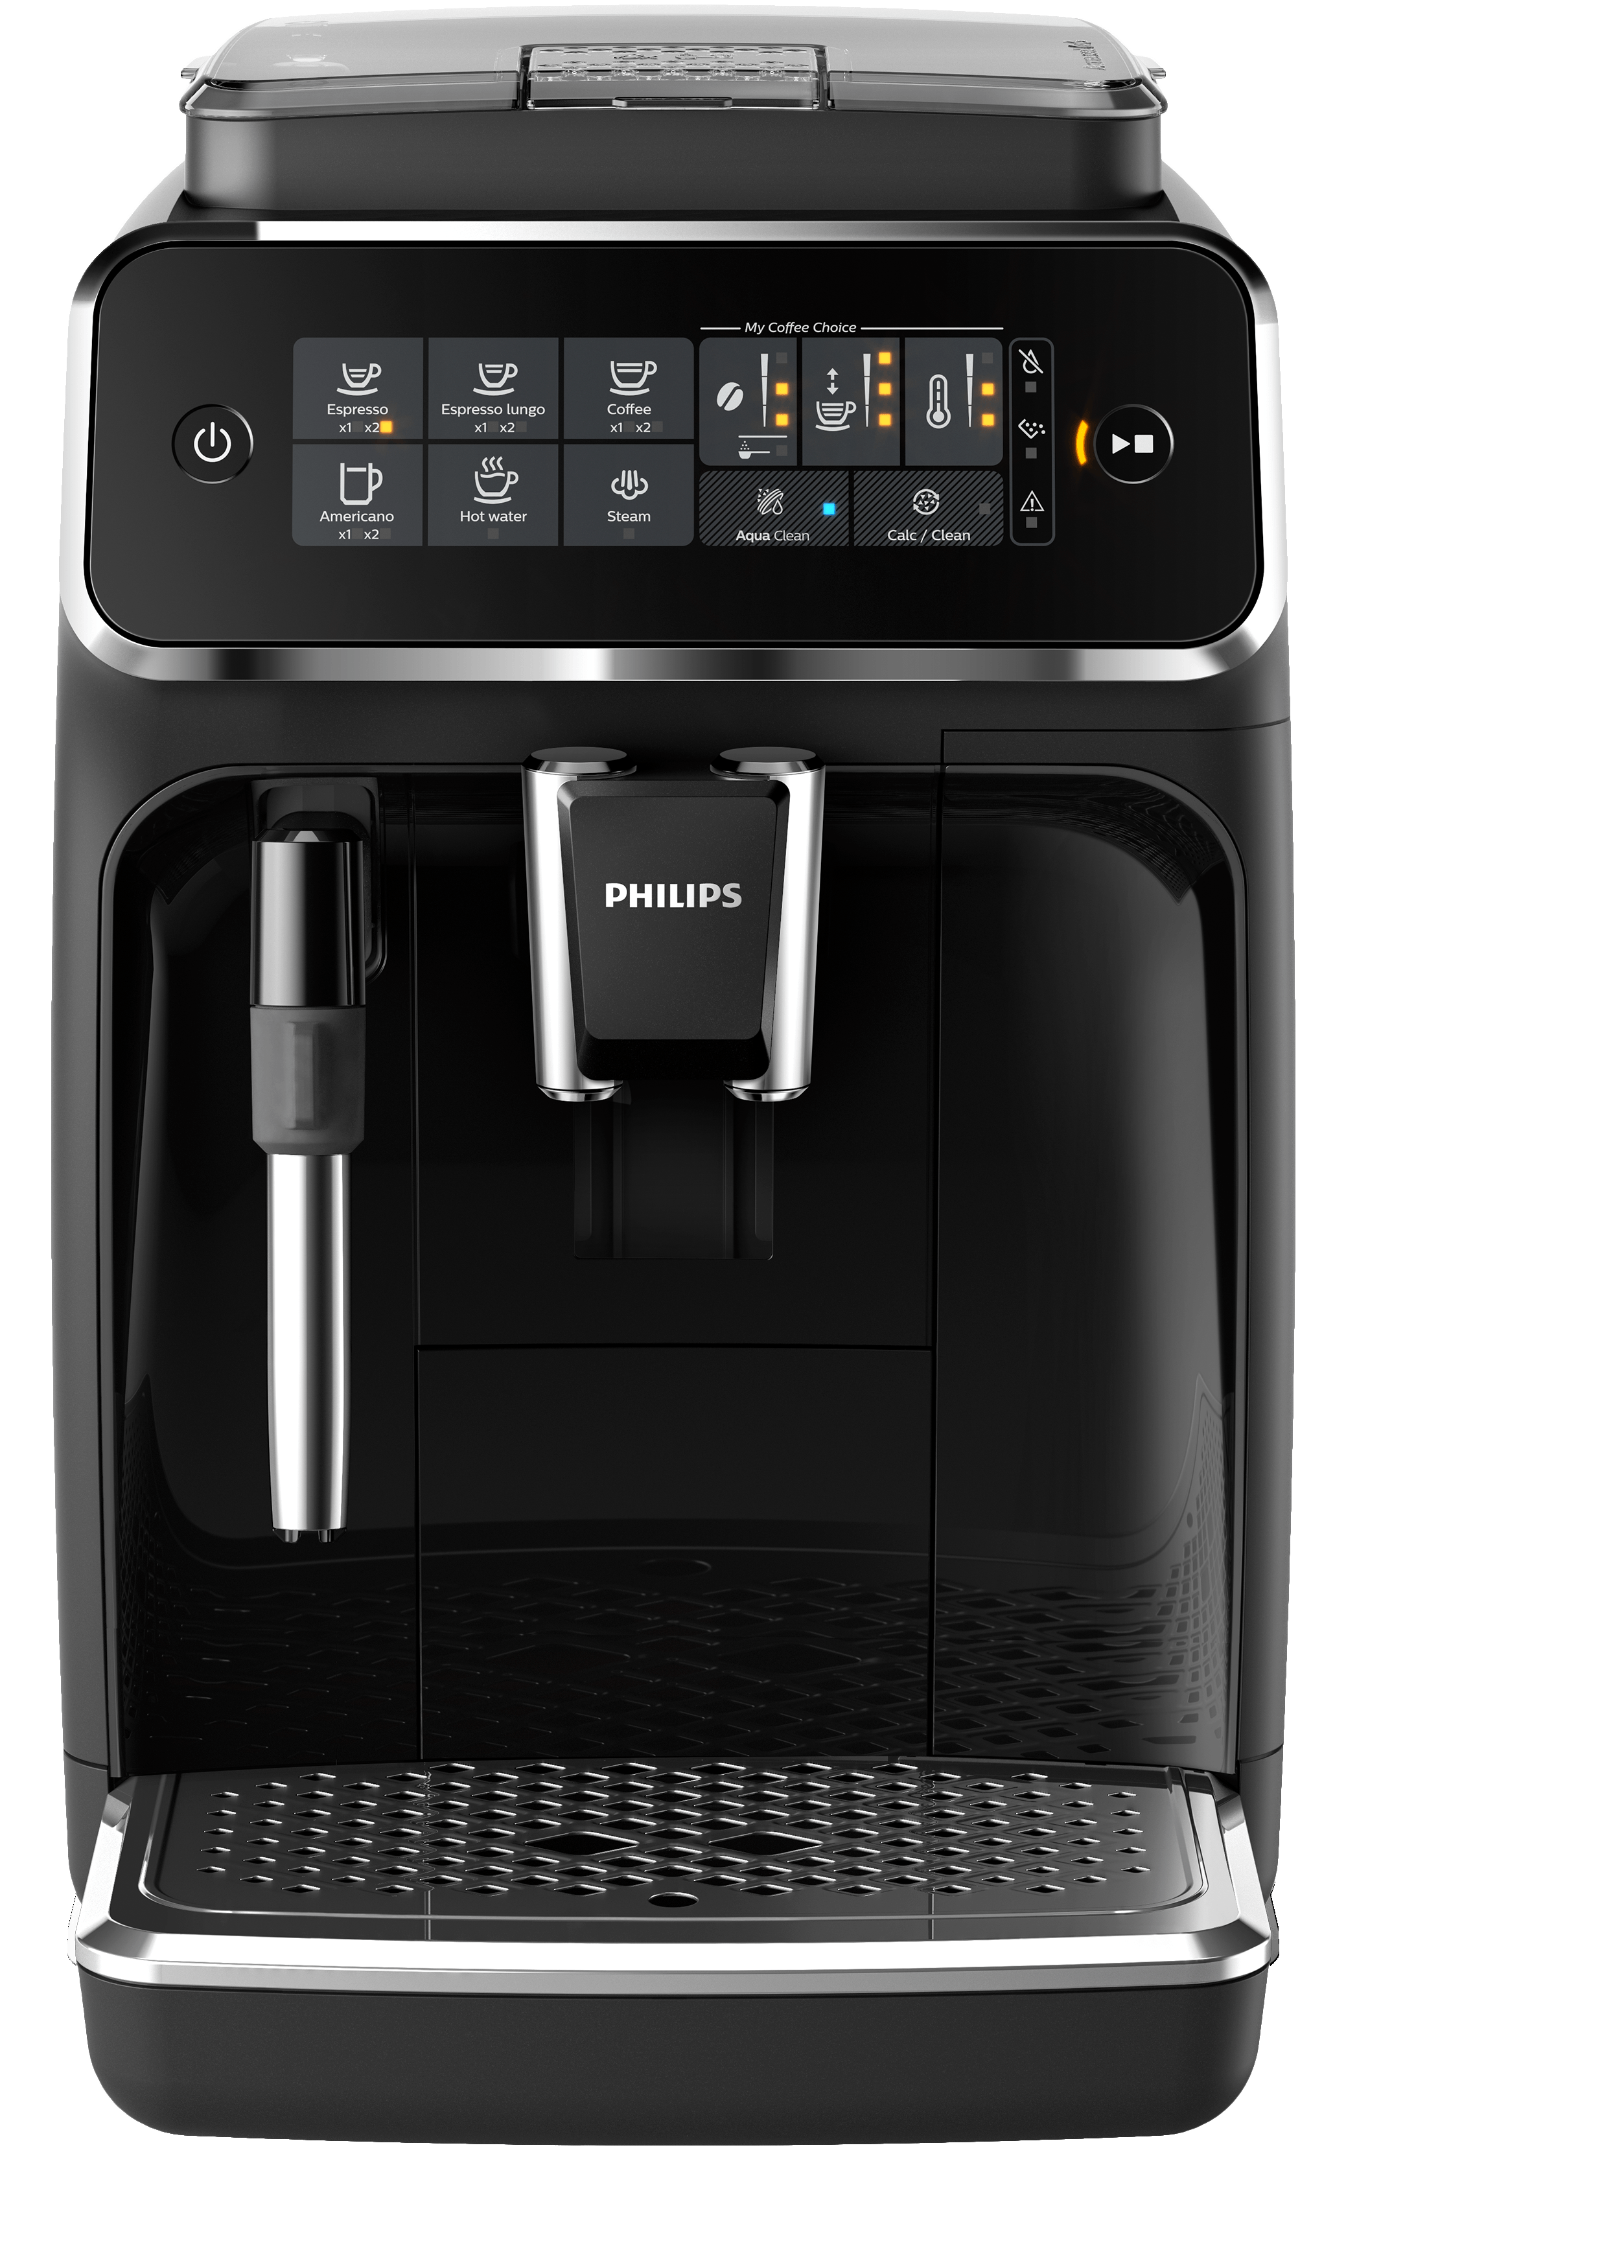 Philips Espresso machine 12 Black EP3221/44 in Black color showcased by Corbeil Electro Store